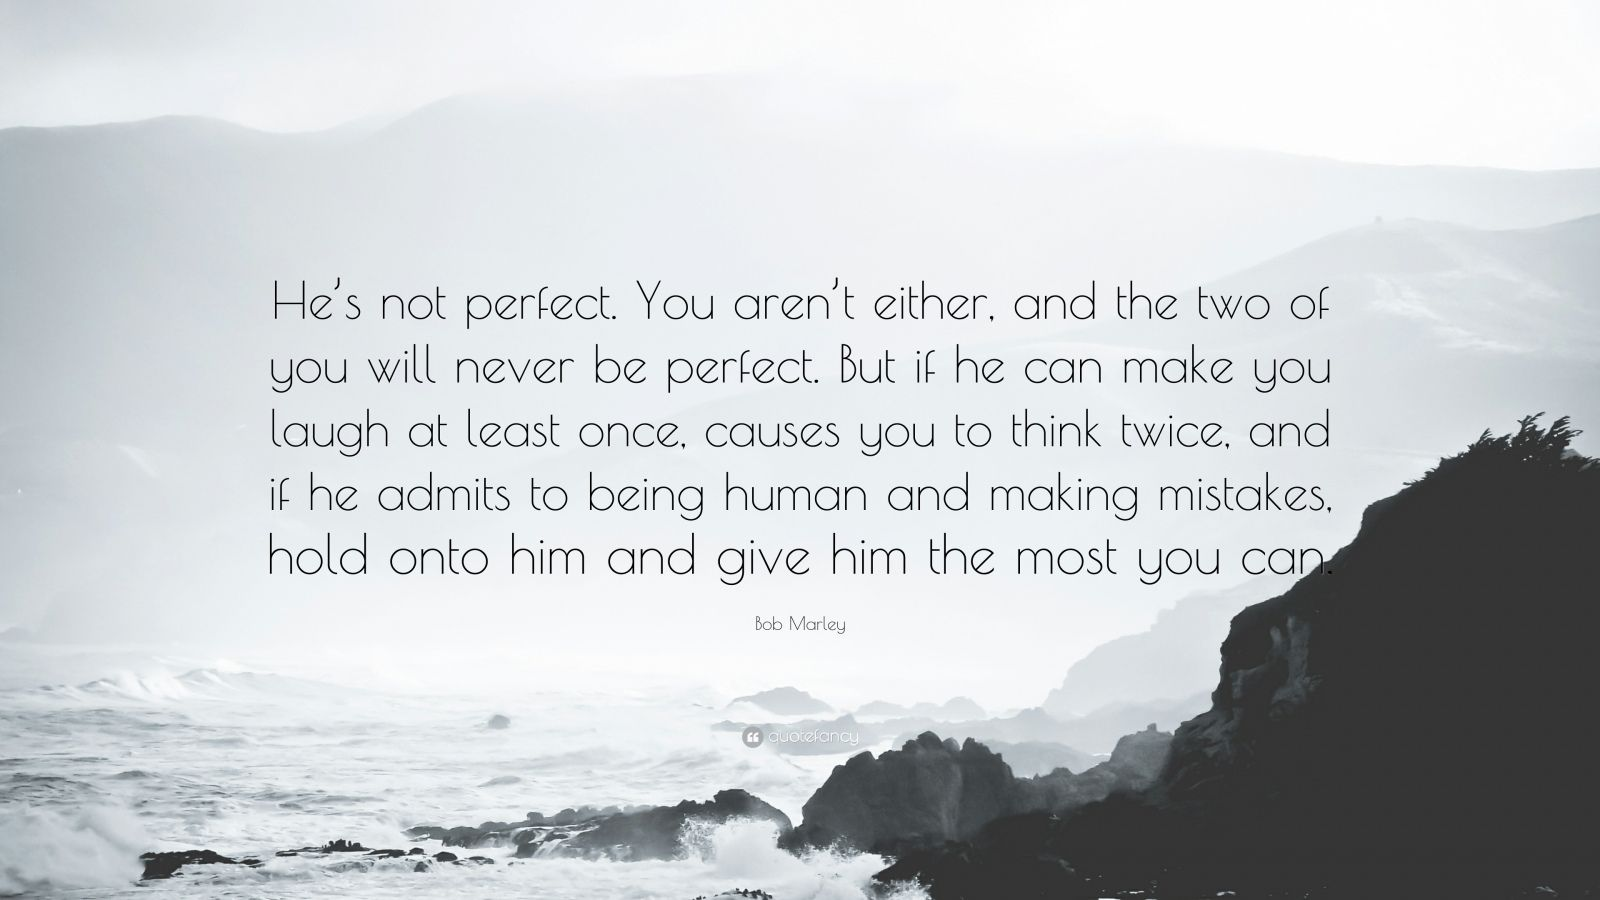 "Bob Marley Quote: ""He's not perfect. You aren't either, and the two of you will never be perfect. But if he can make you laugh at least once, causes you to think twice, and if he admits to being human and making mistakes, hold onto him and give him the most you can."""